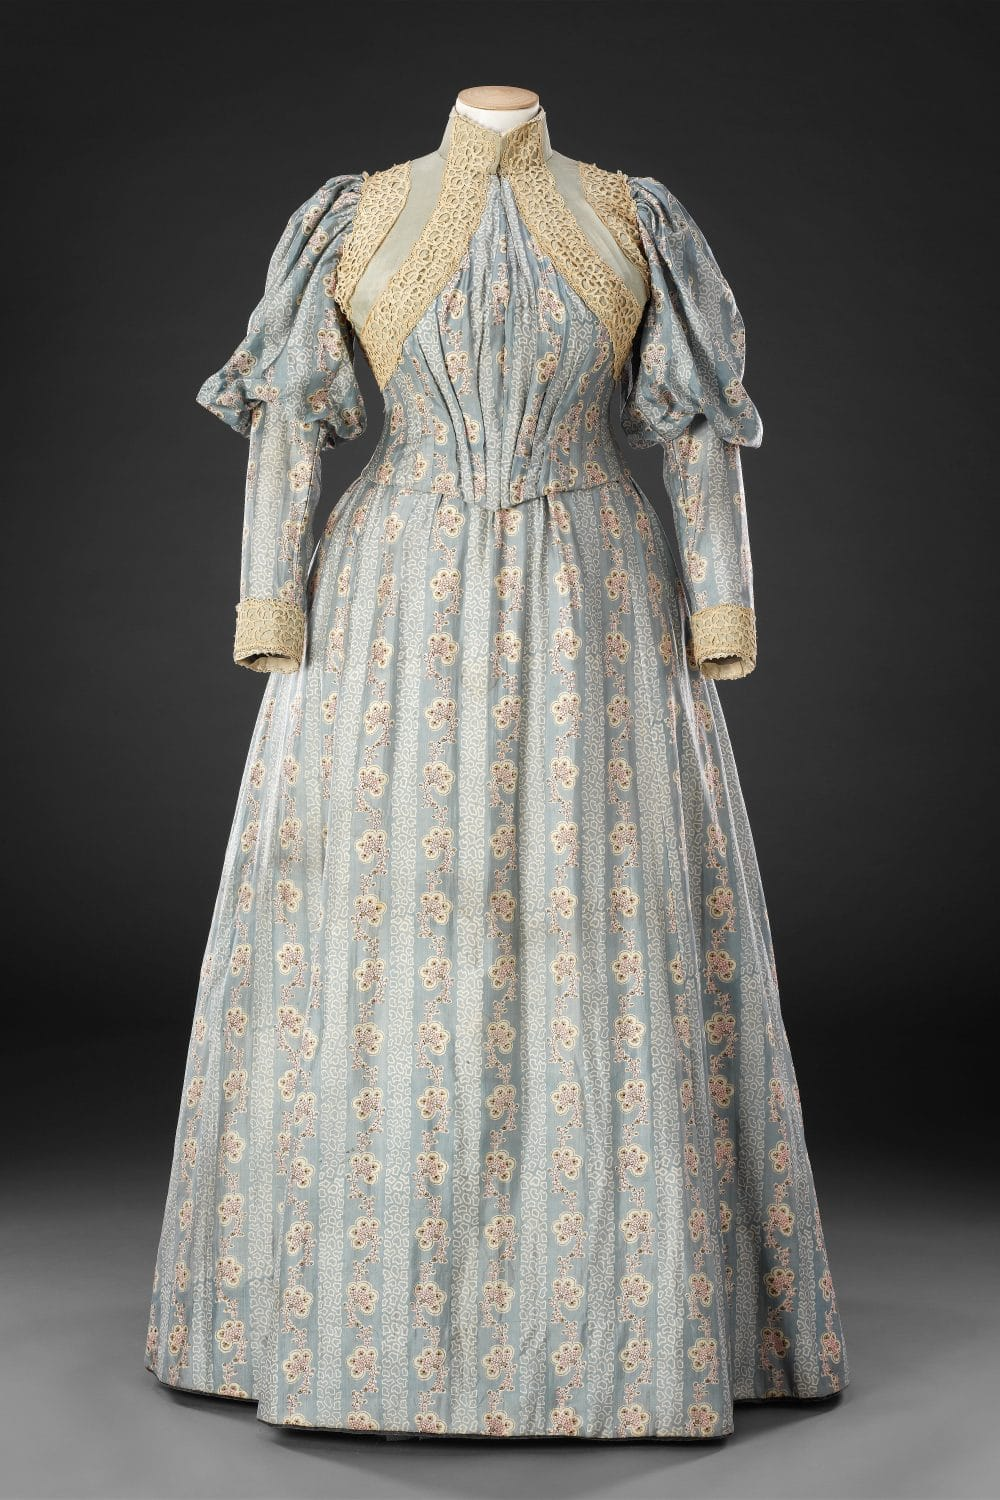 Dress with Two Bodices